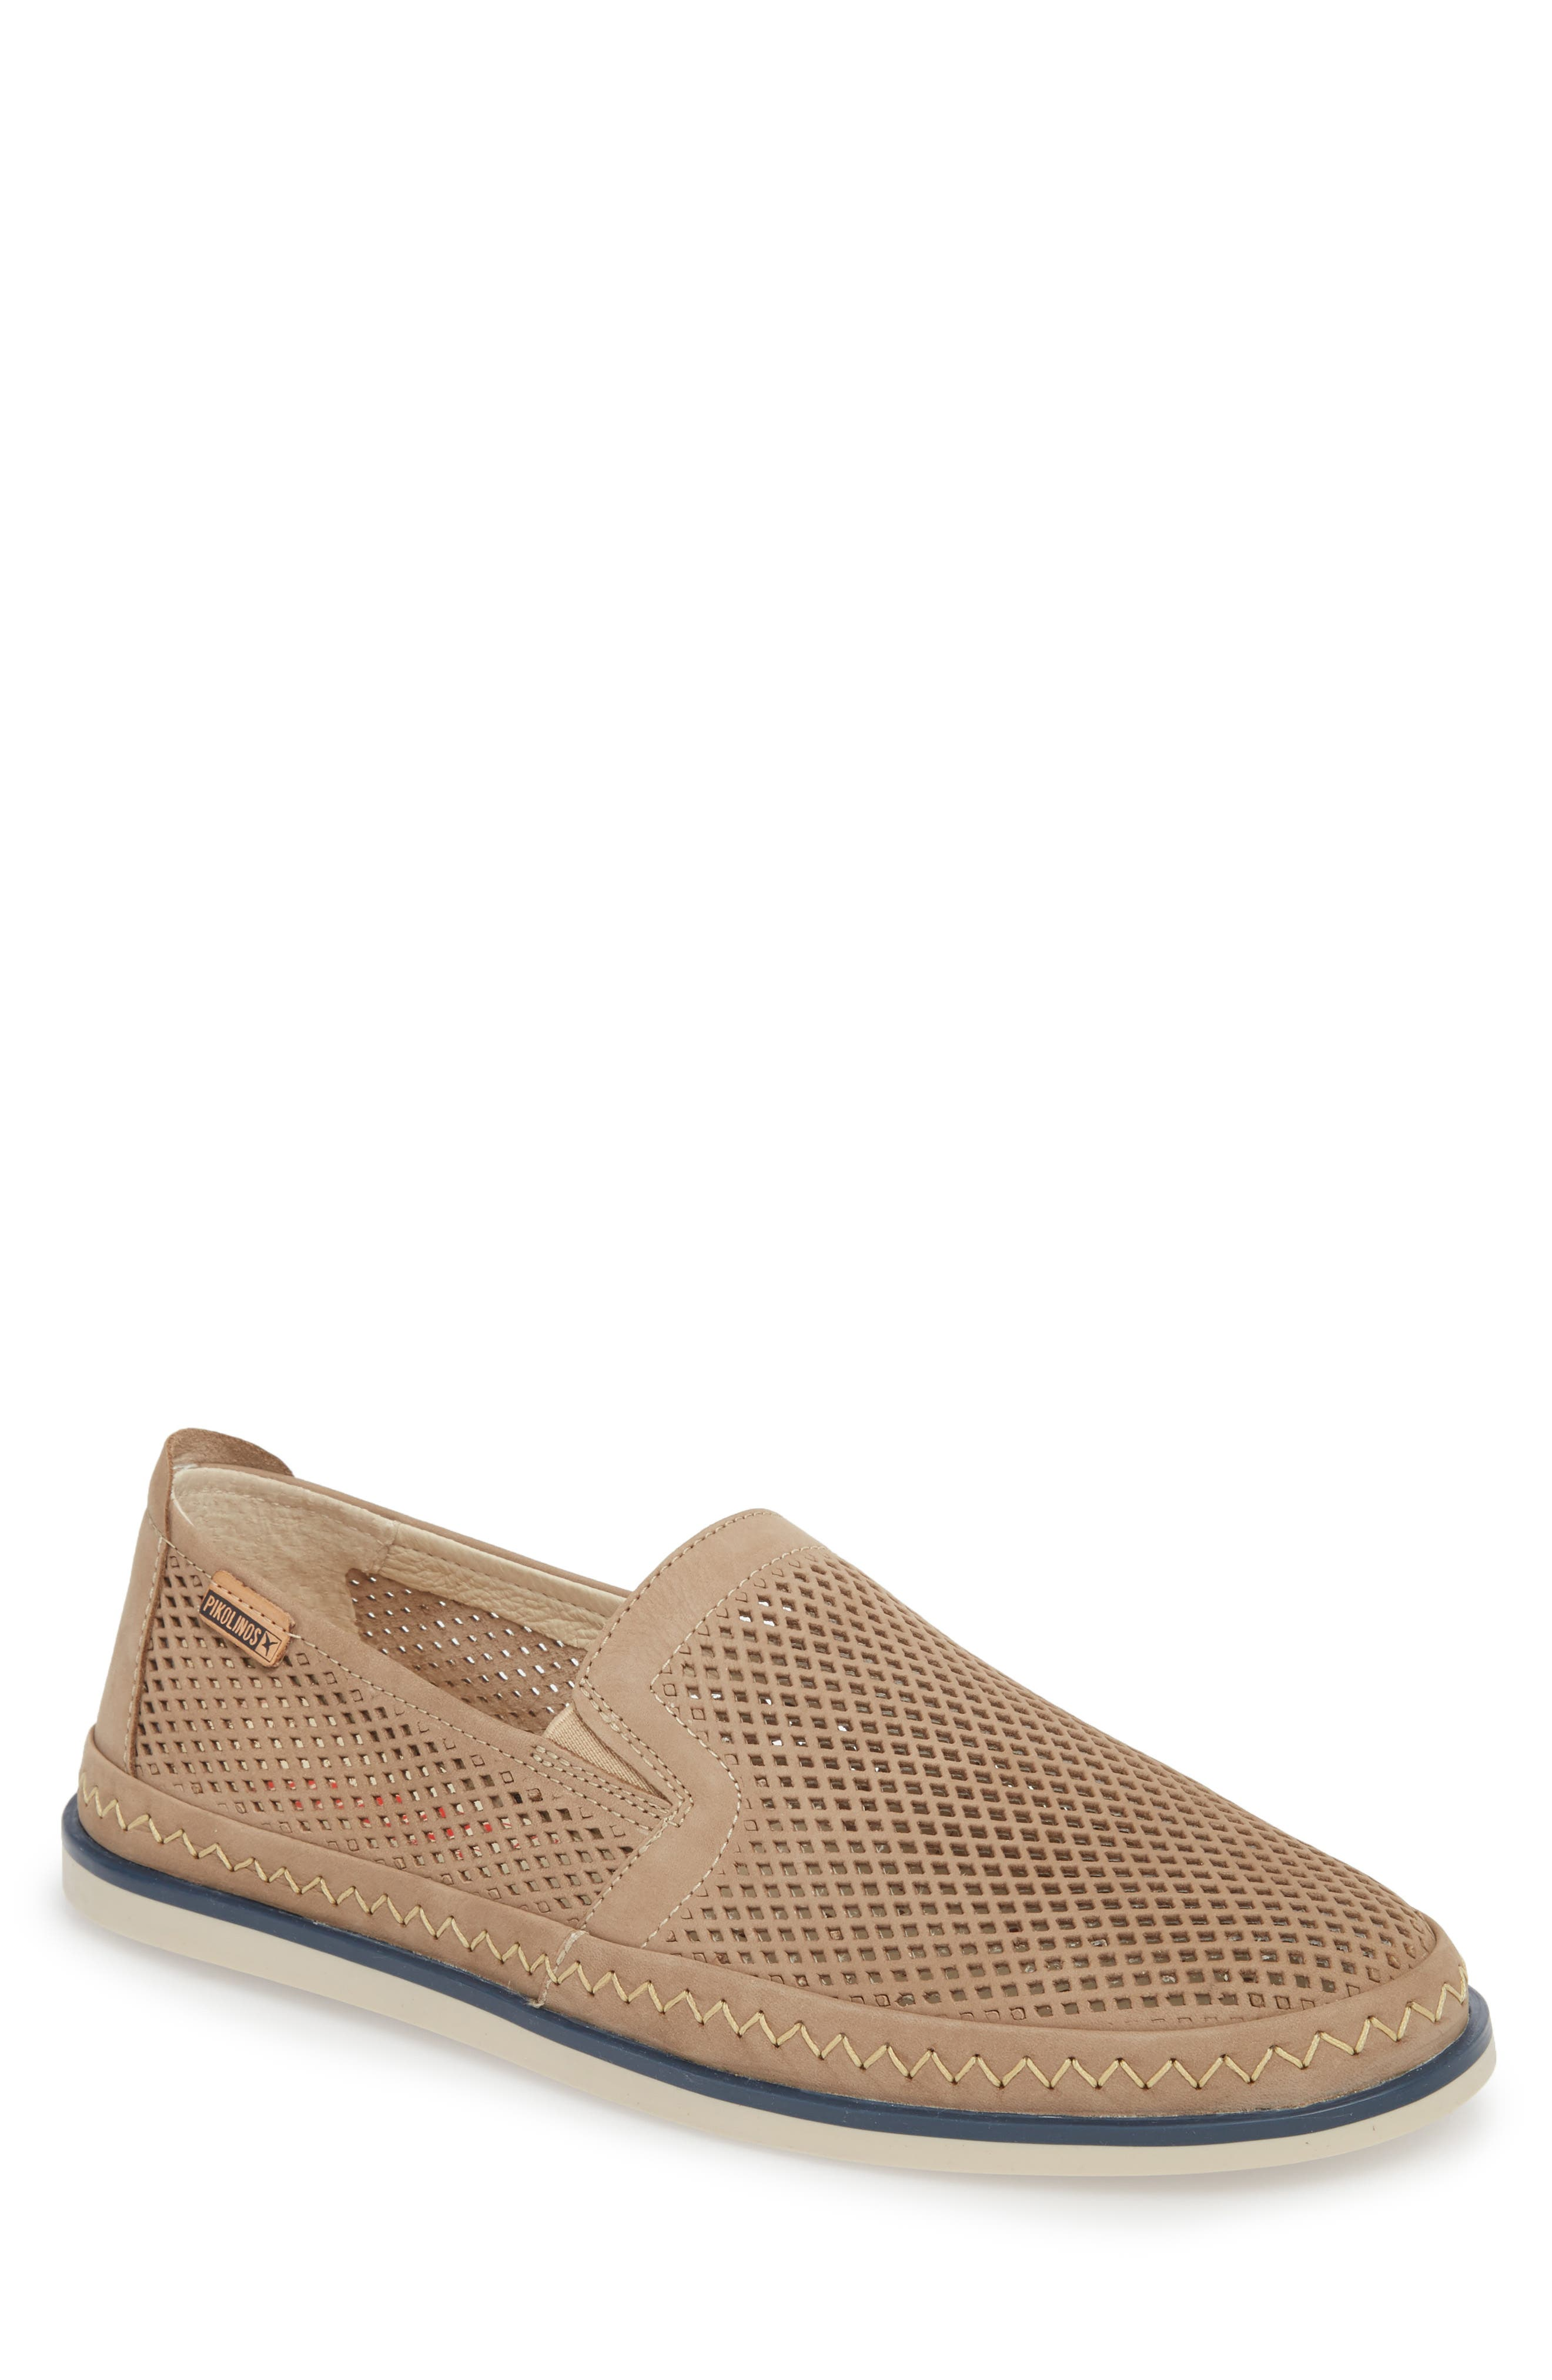 Linares Slip-On Loafer,                             Main thumbnail 1, color,                             Piedra Leather